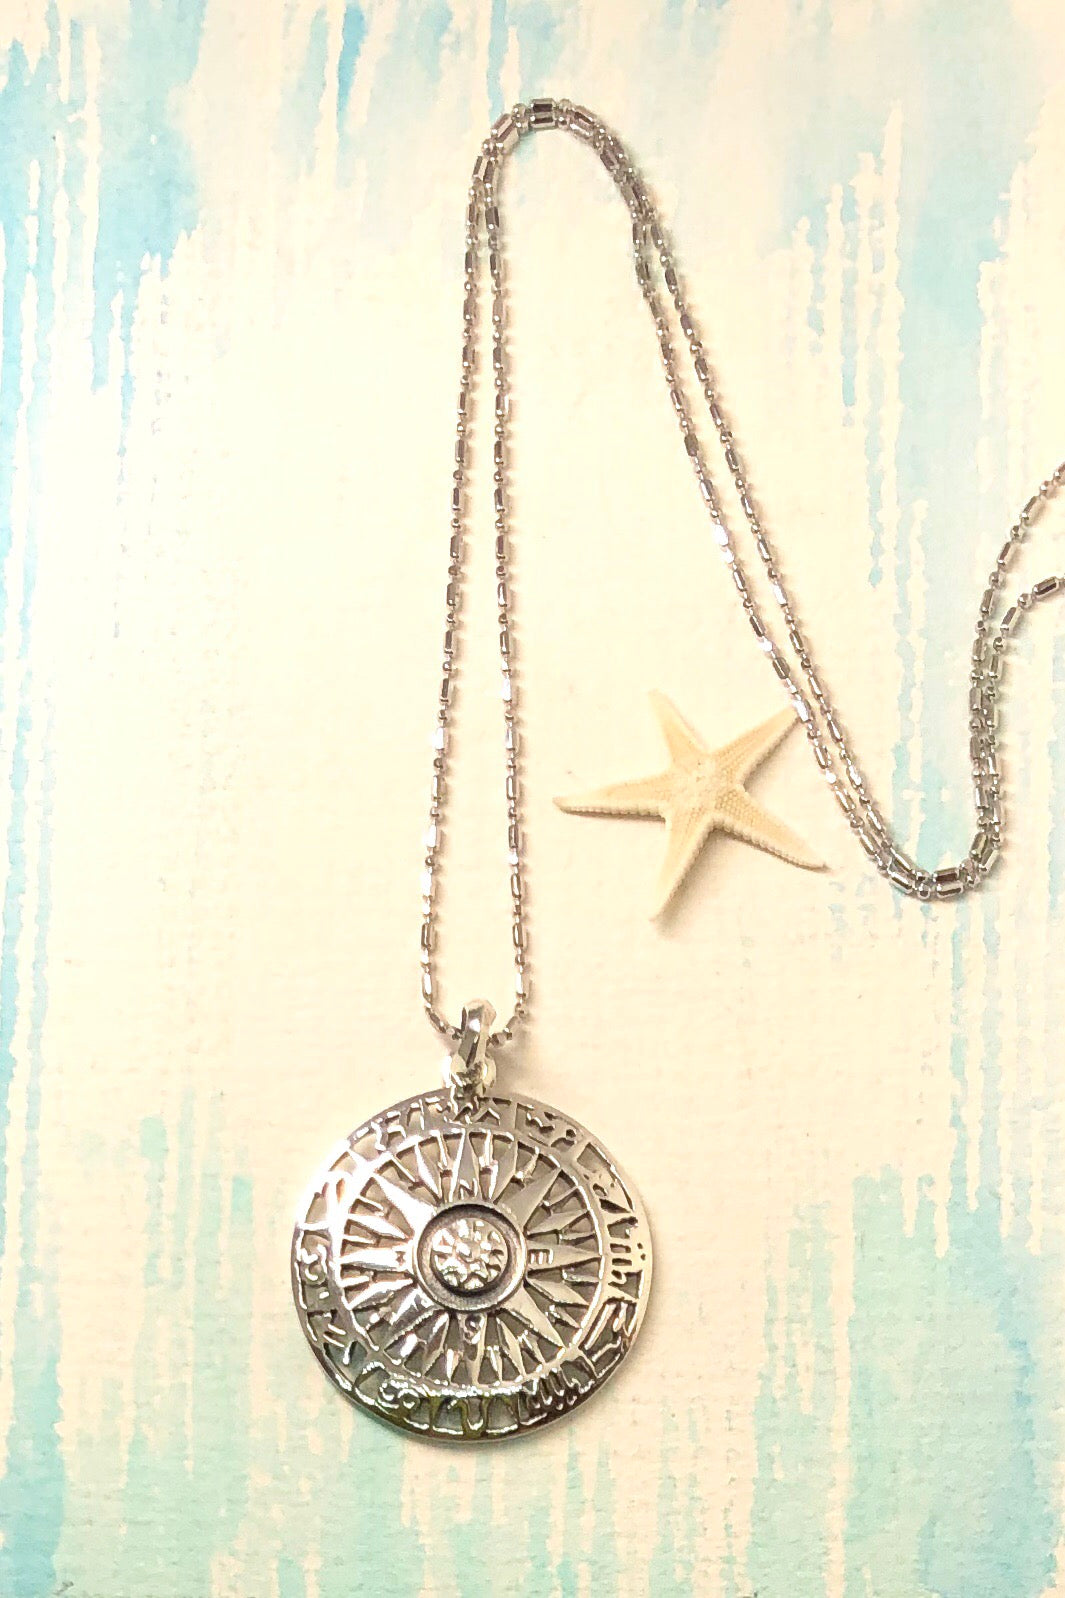 This solid silver Astro Compass pendant comes on a fine silver chain.